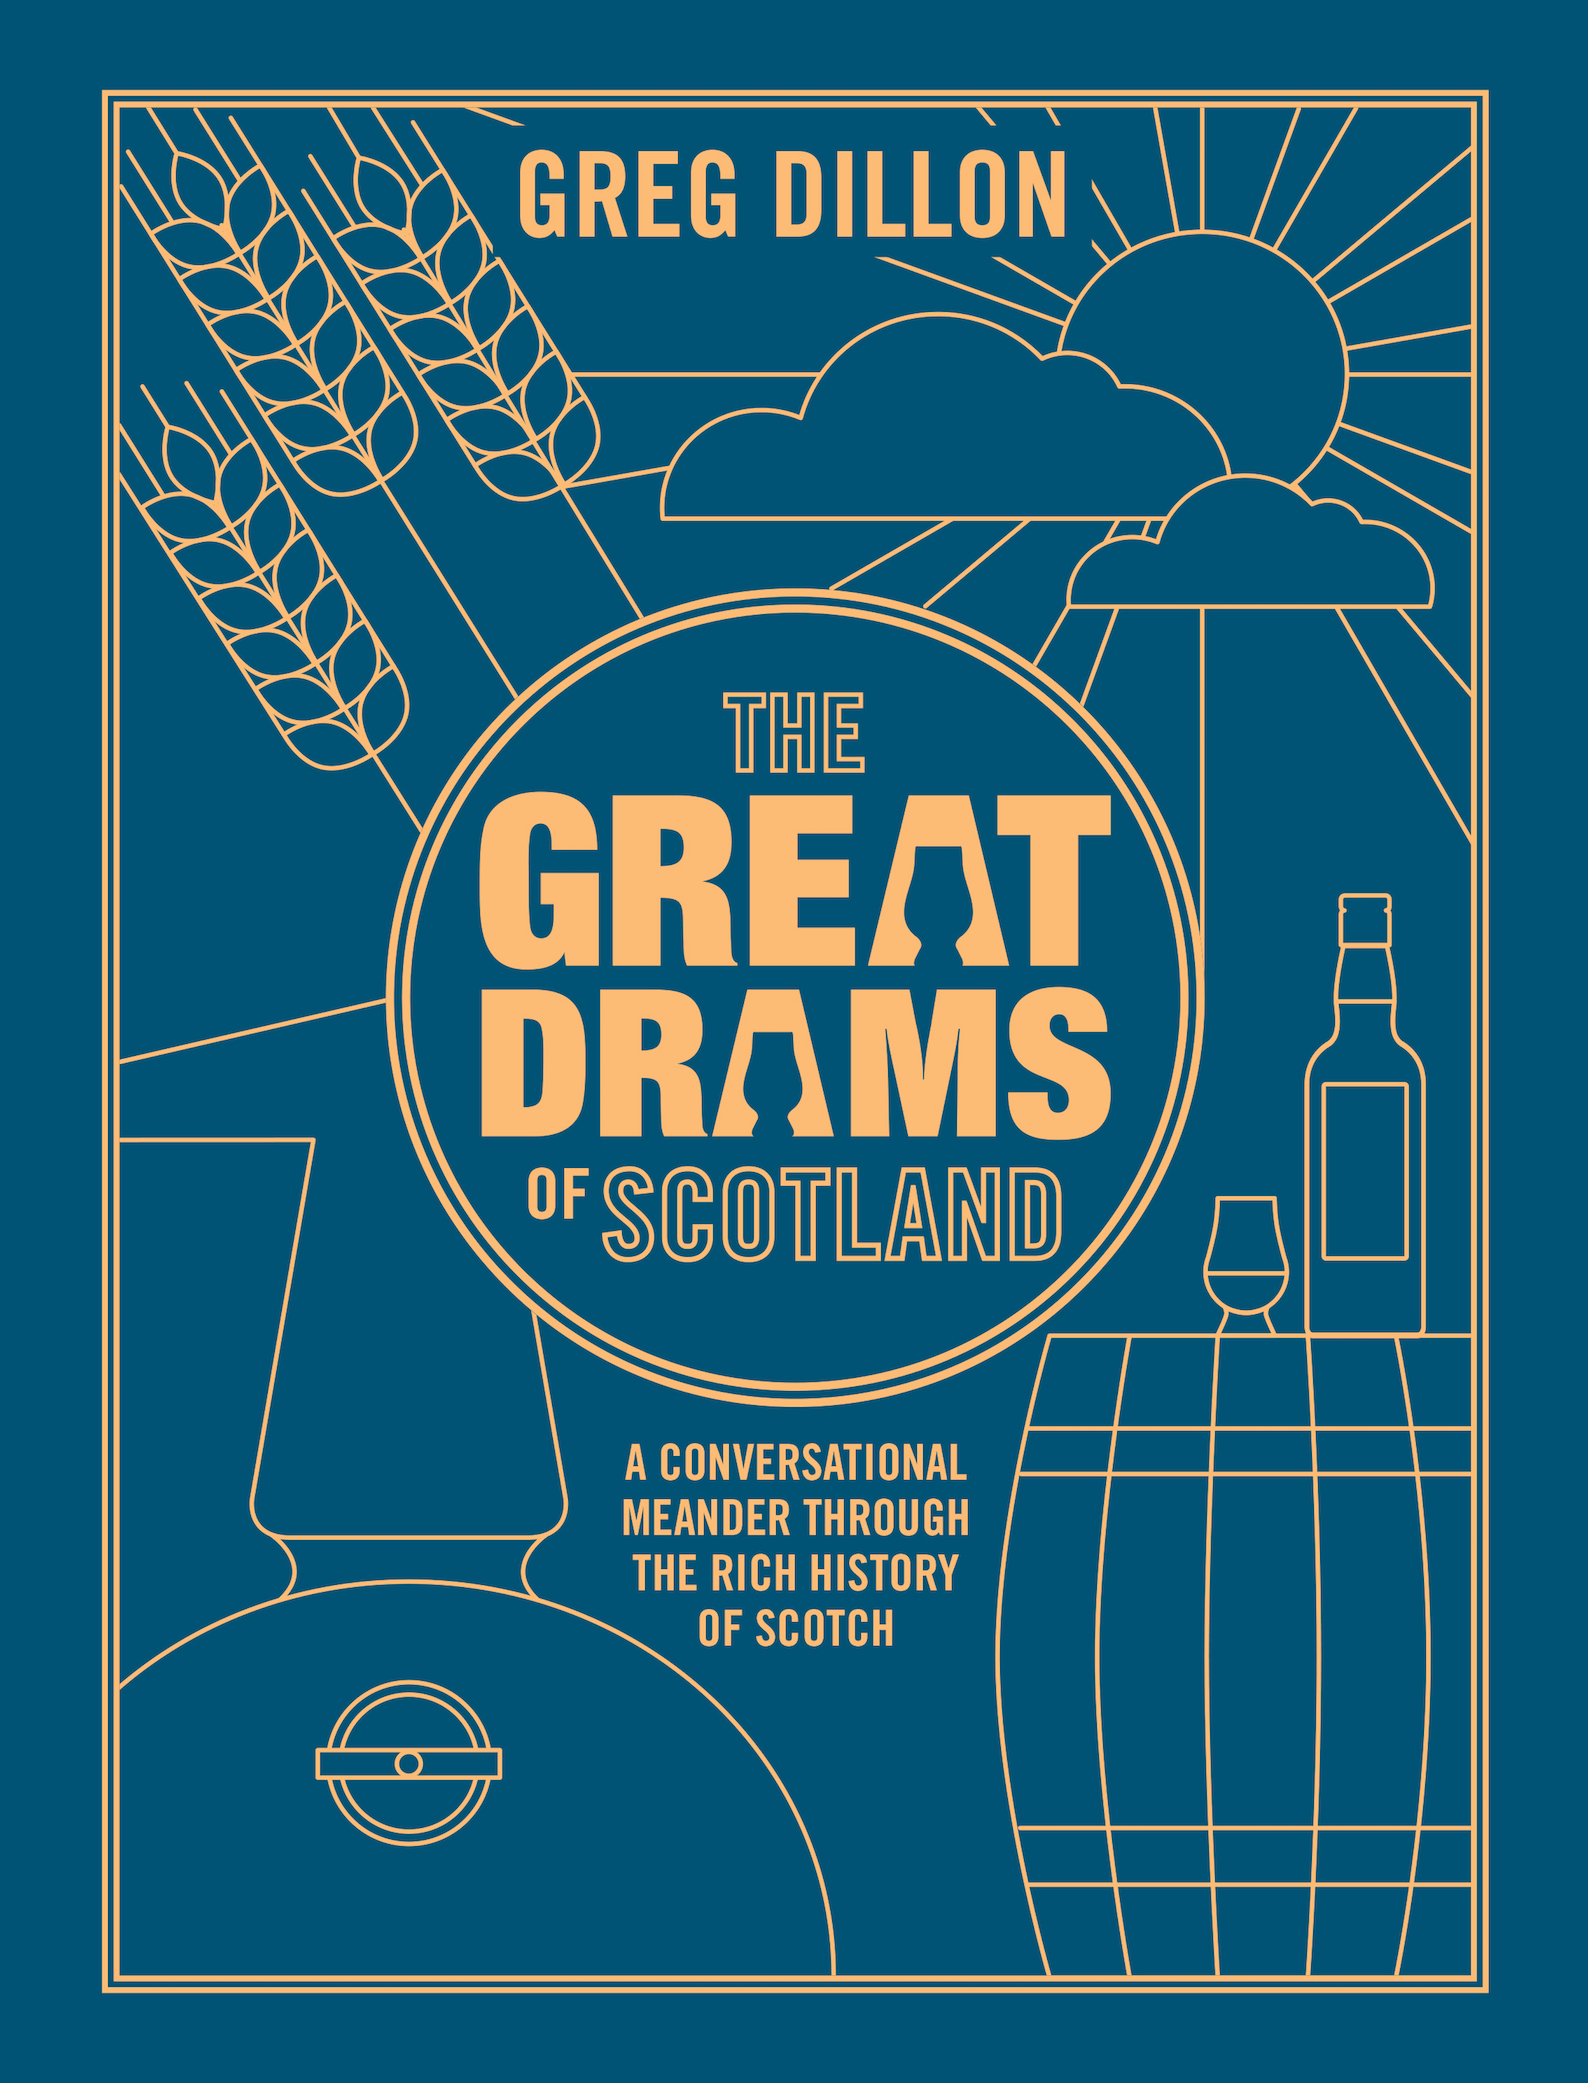 Great Drams of Scotland